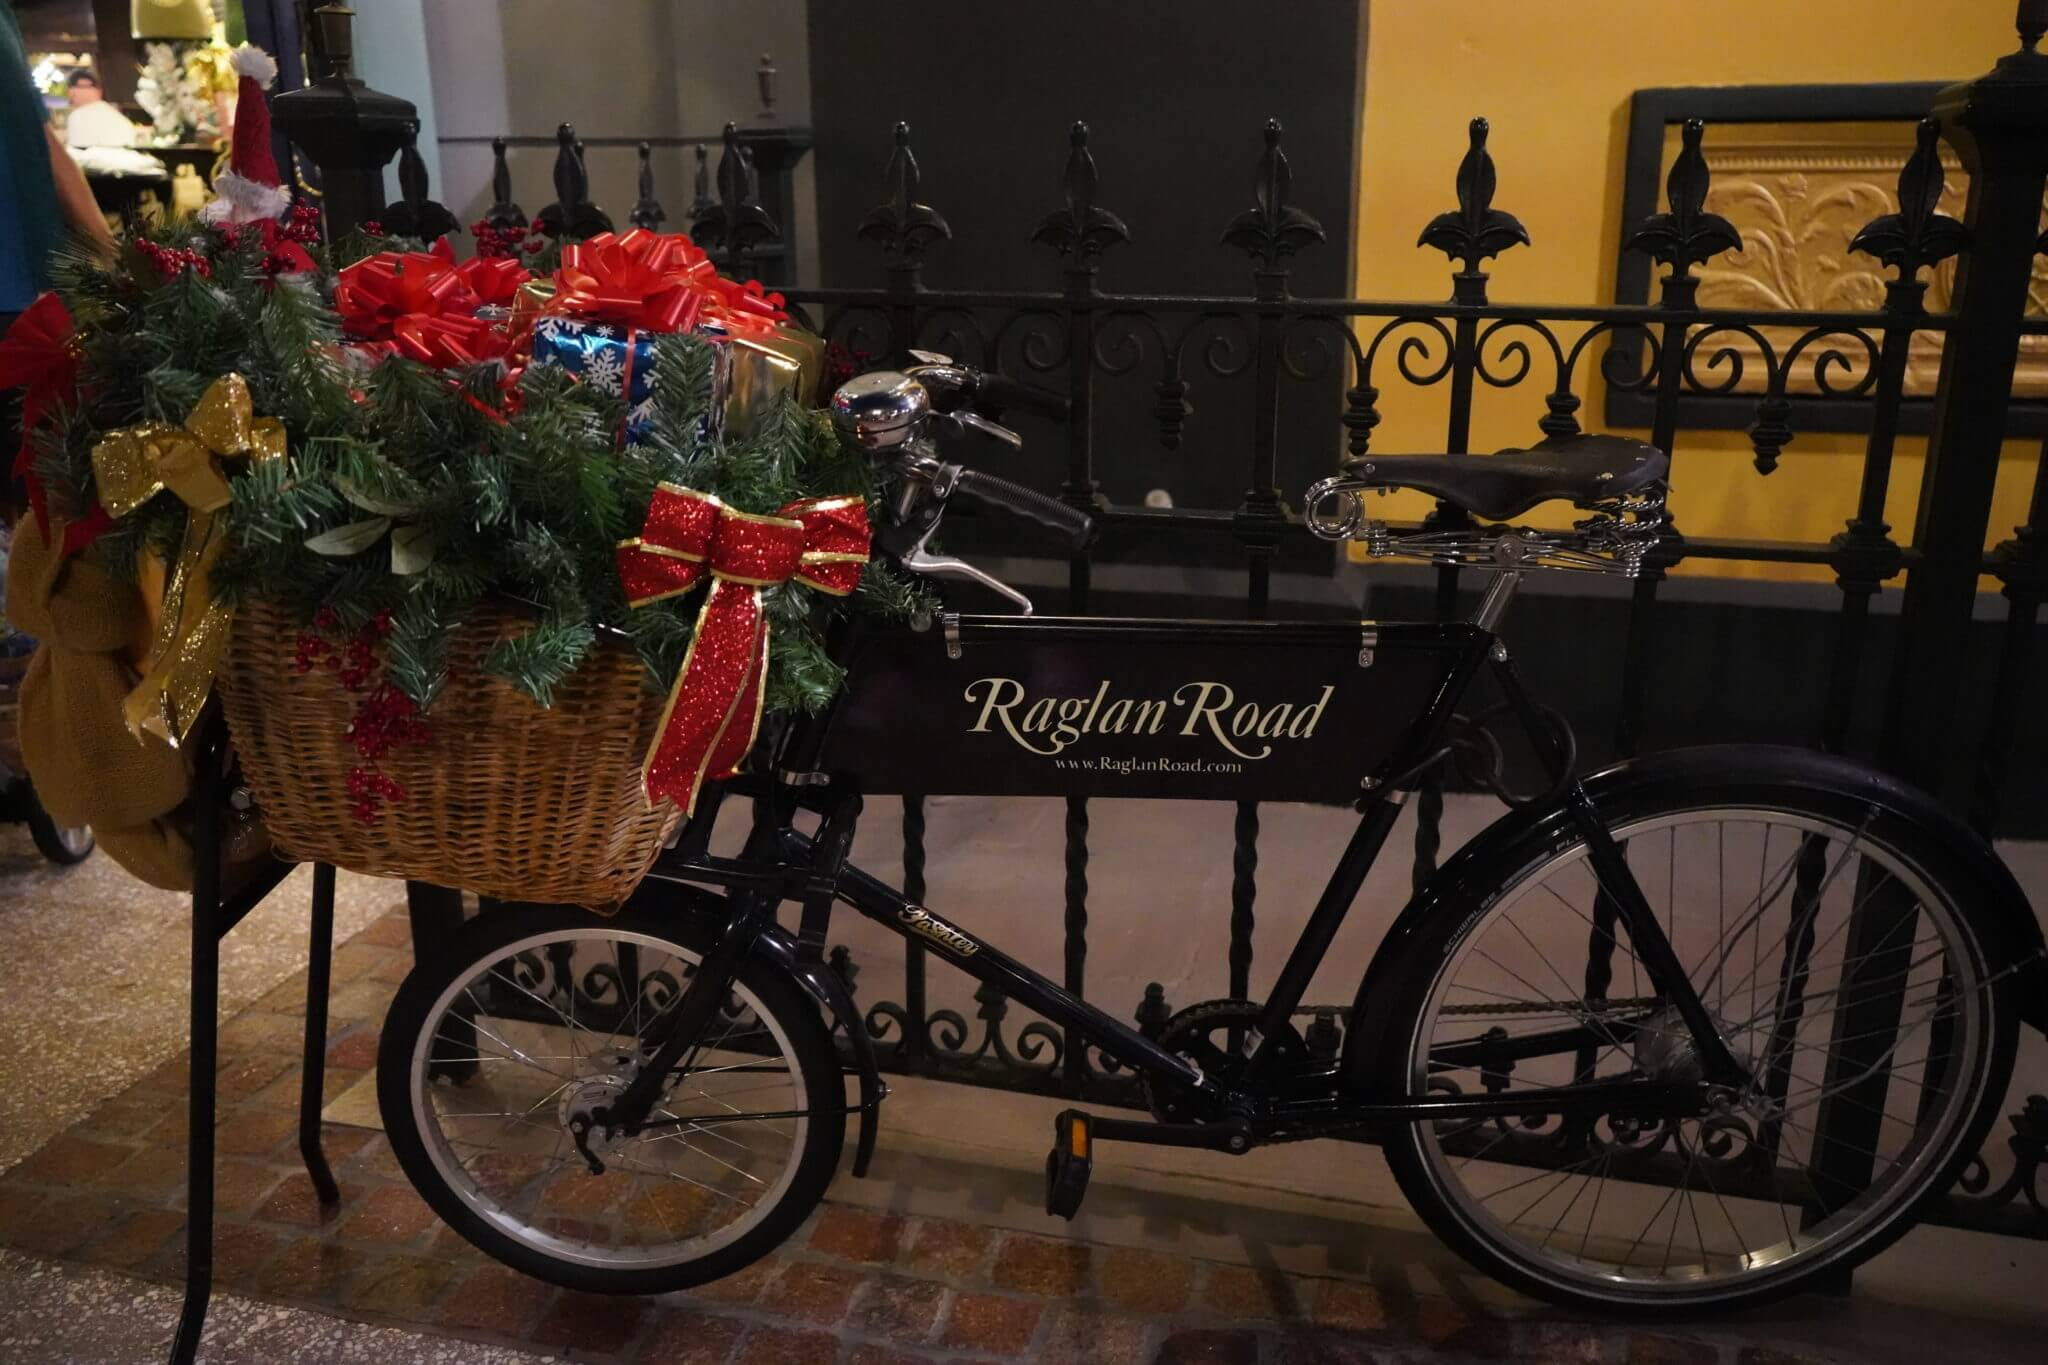 Raglan Road Bike Holiday Decorations at Disney Springs